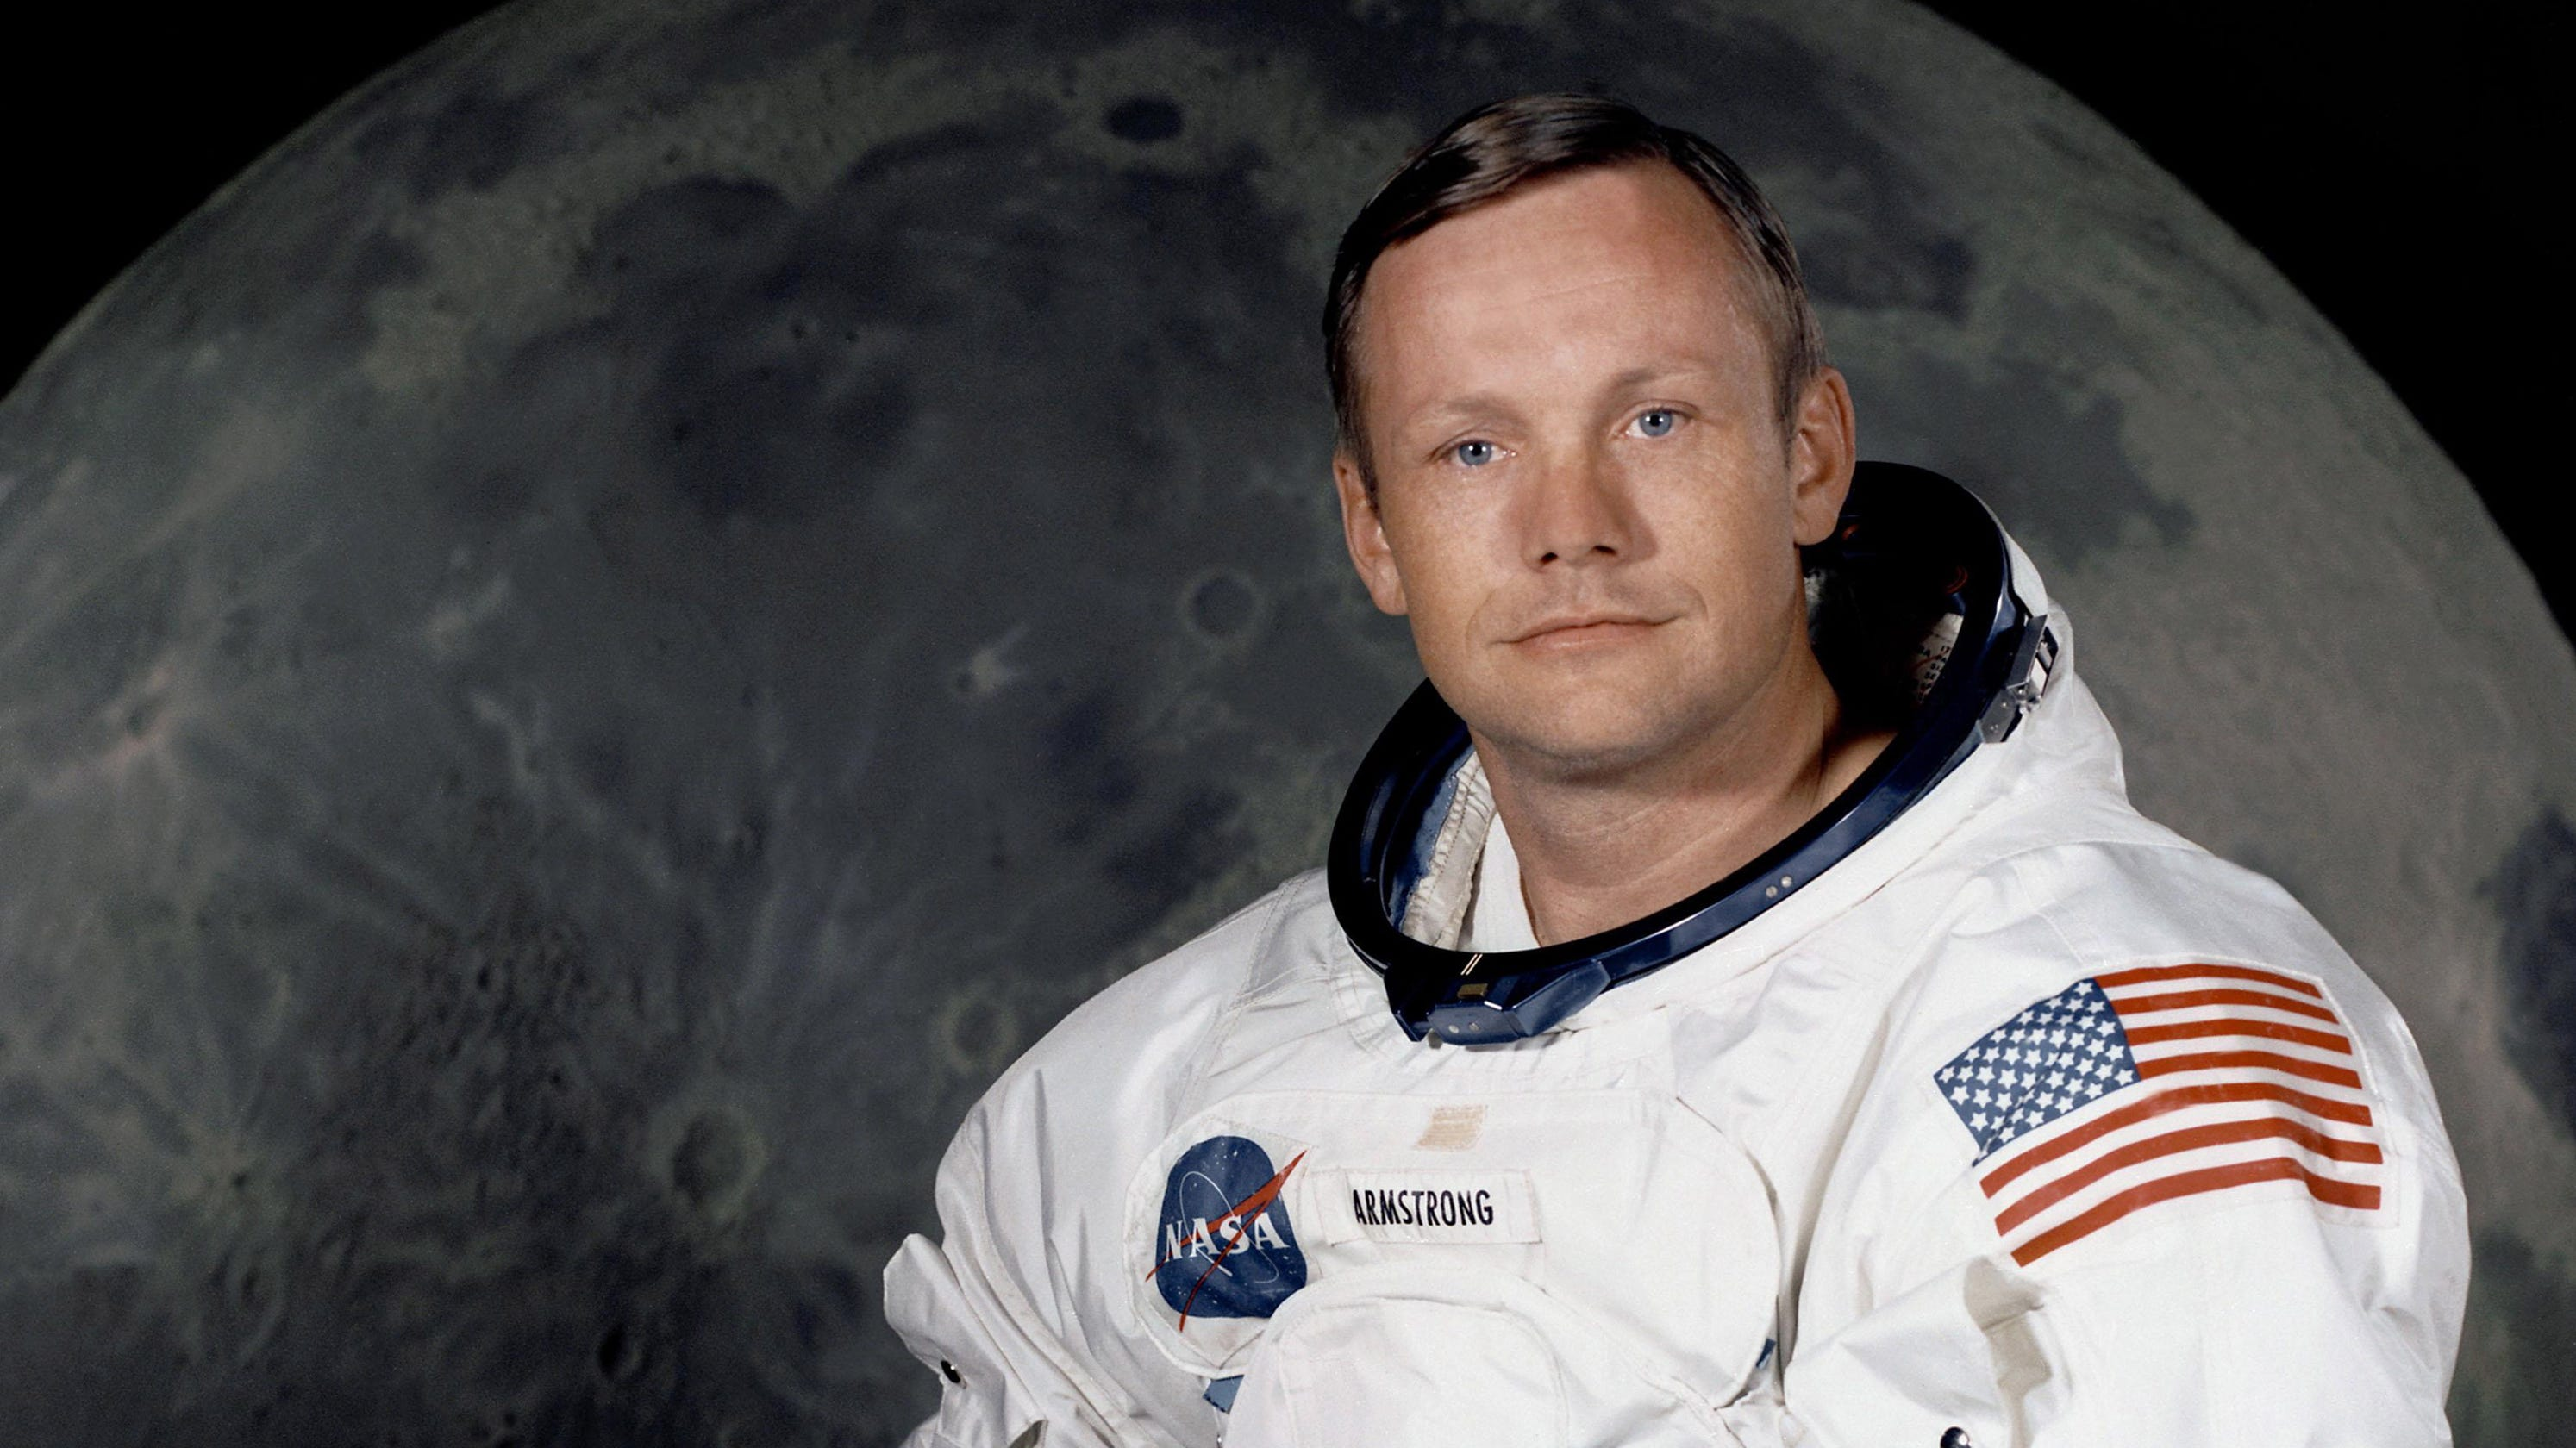 Beyond the Apollo 11 moon landing: Neil Armstrong's close friend reveals a different side of legend